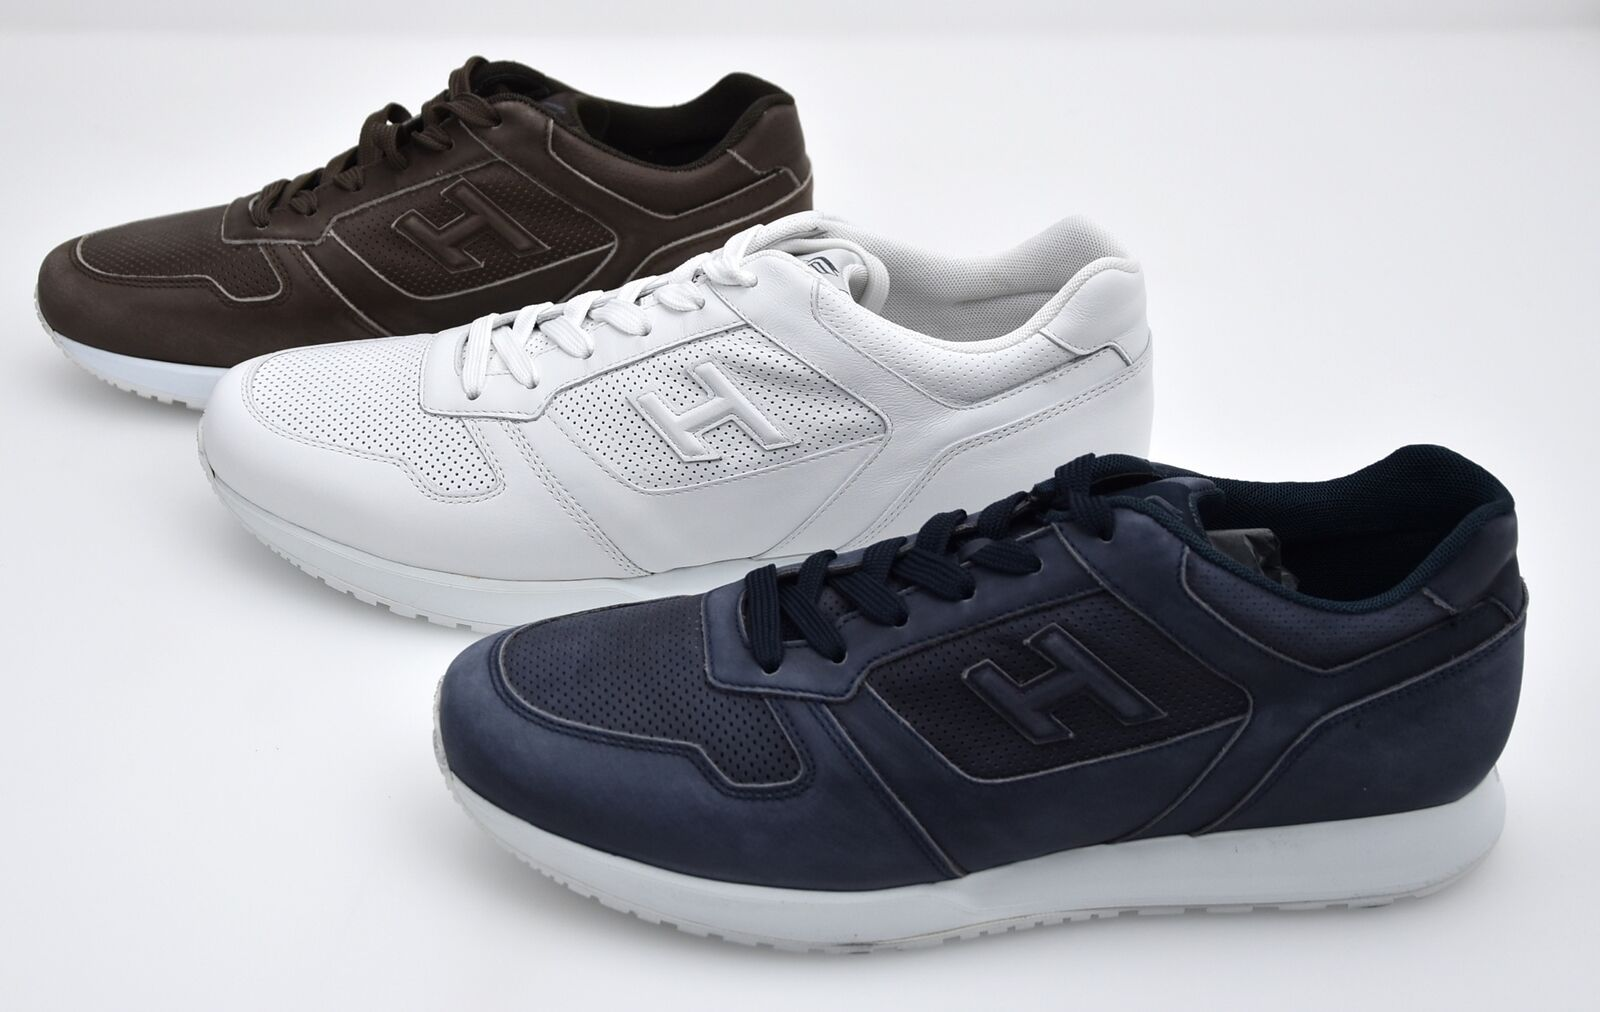 HOGAN H321 MAN SNEAKER SHOES CASUAL FREE TIME LEATHER CODE HXM3210Y120